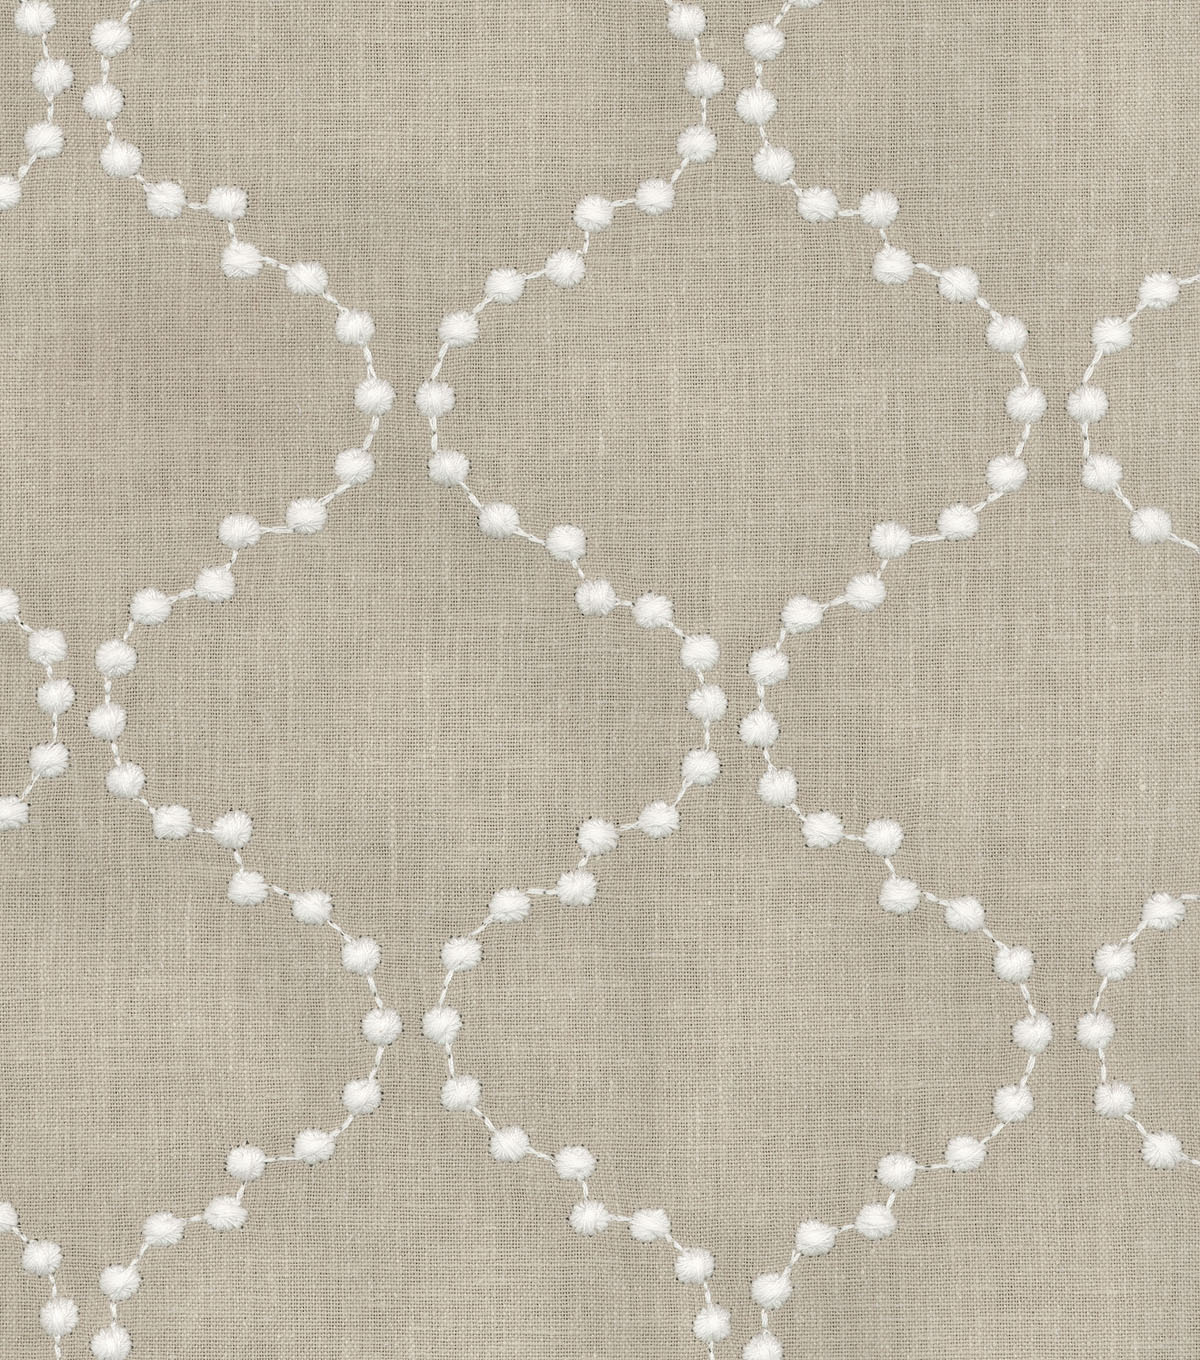 "HGTV Home Upholstery Fabric 55""-Pearl Drop Emb/Flax"